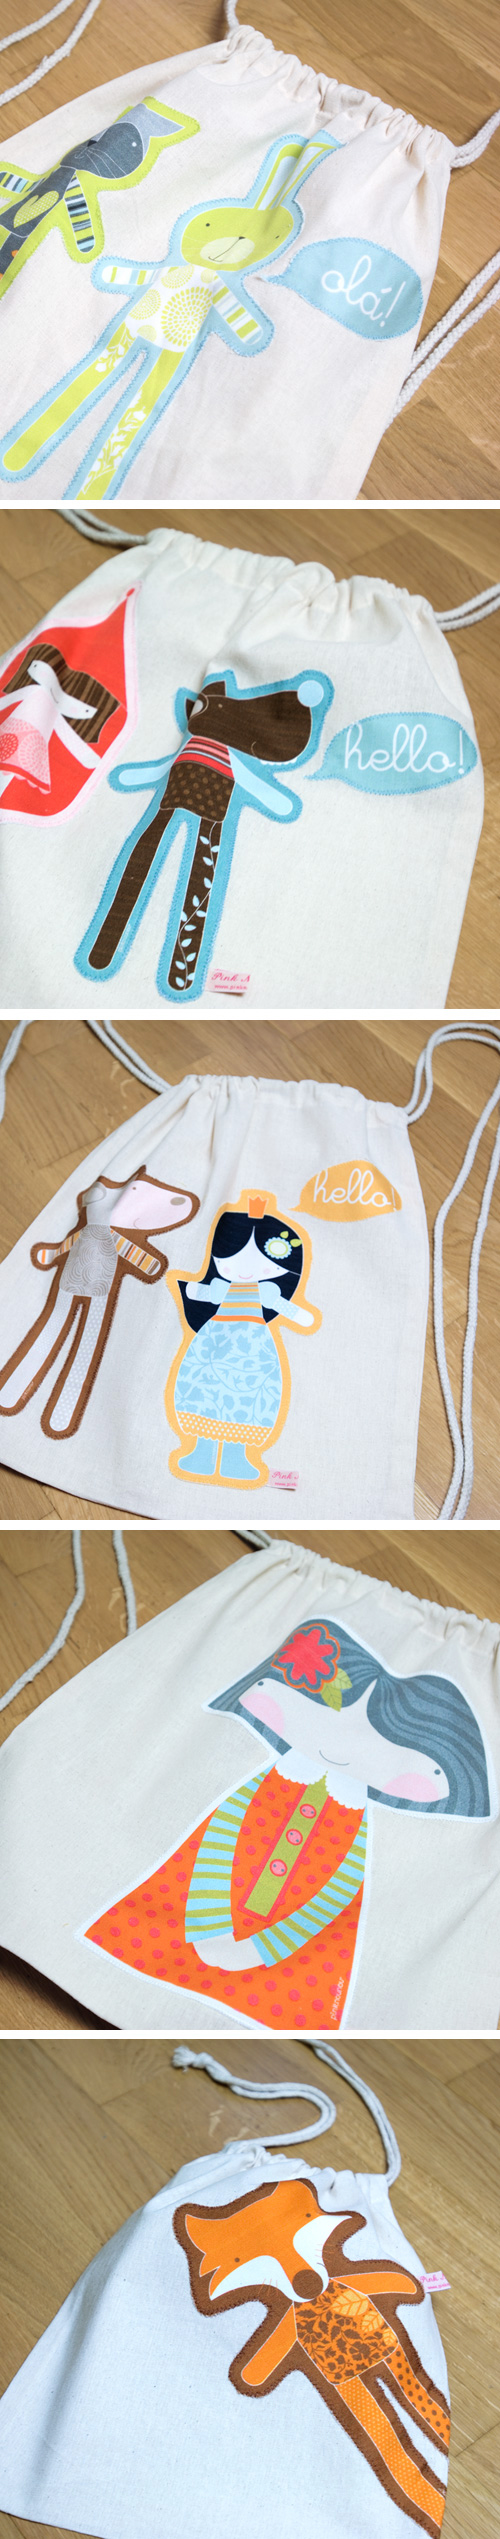 children backpacks and string bags